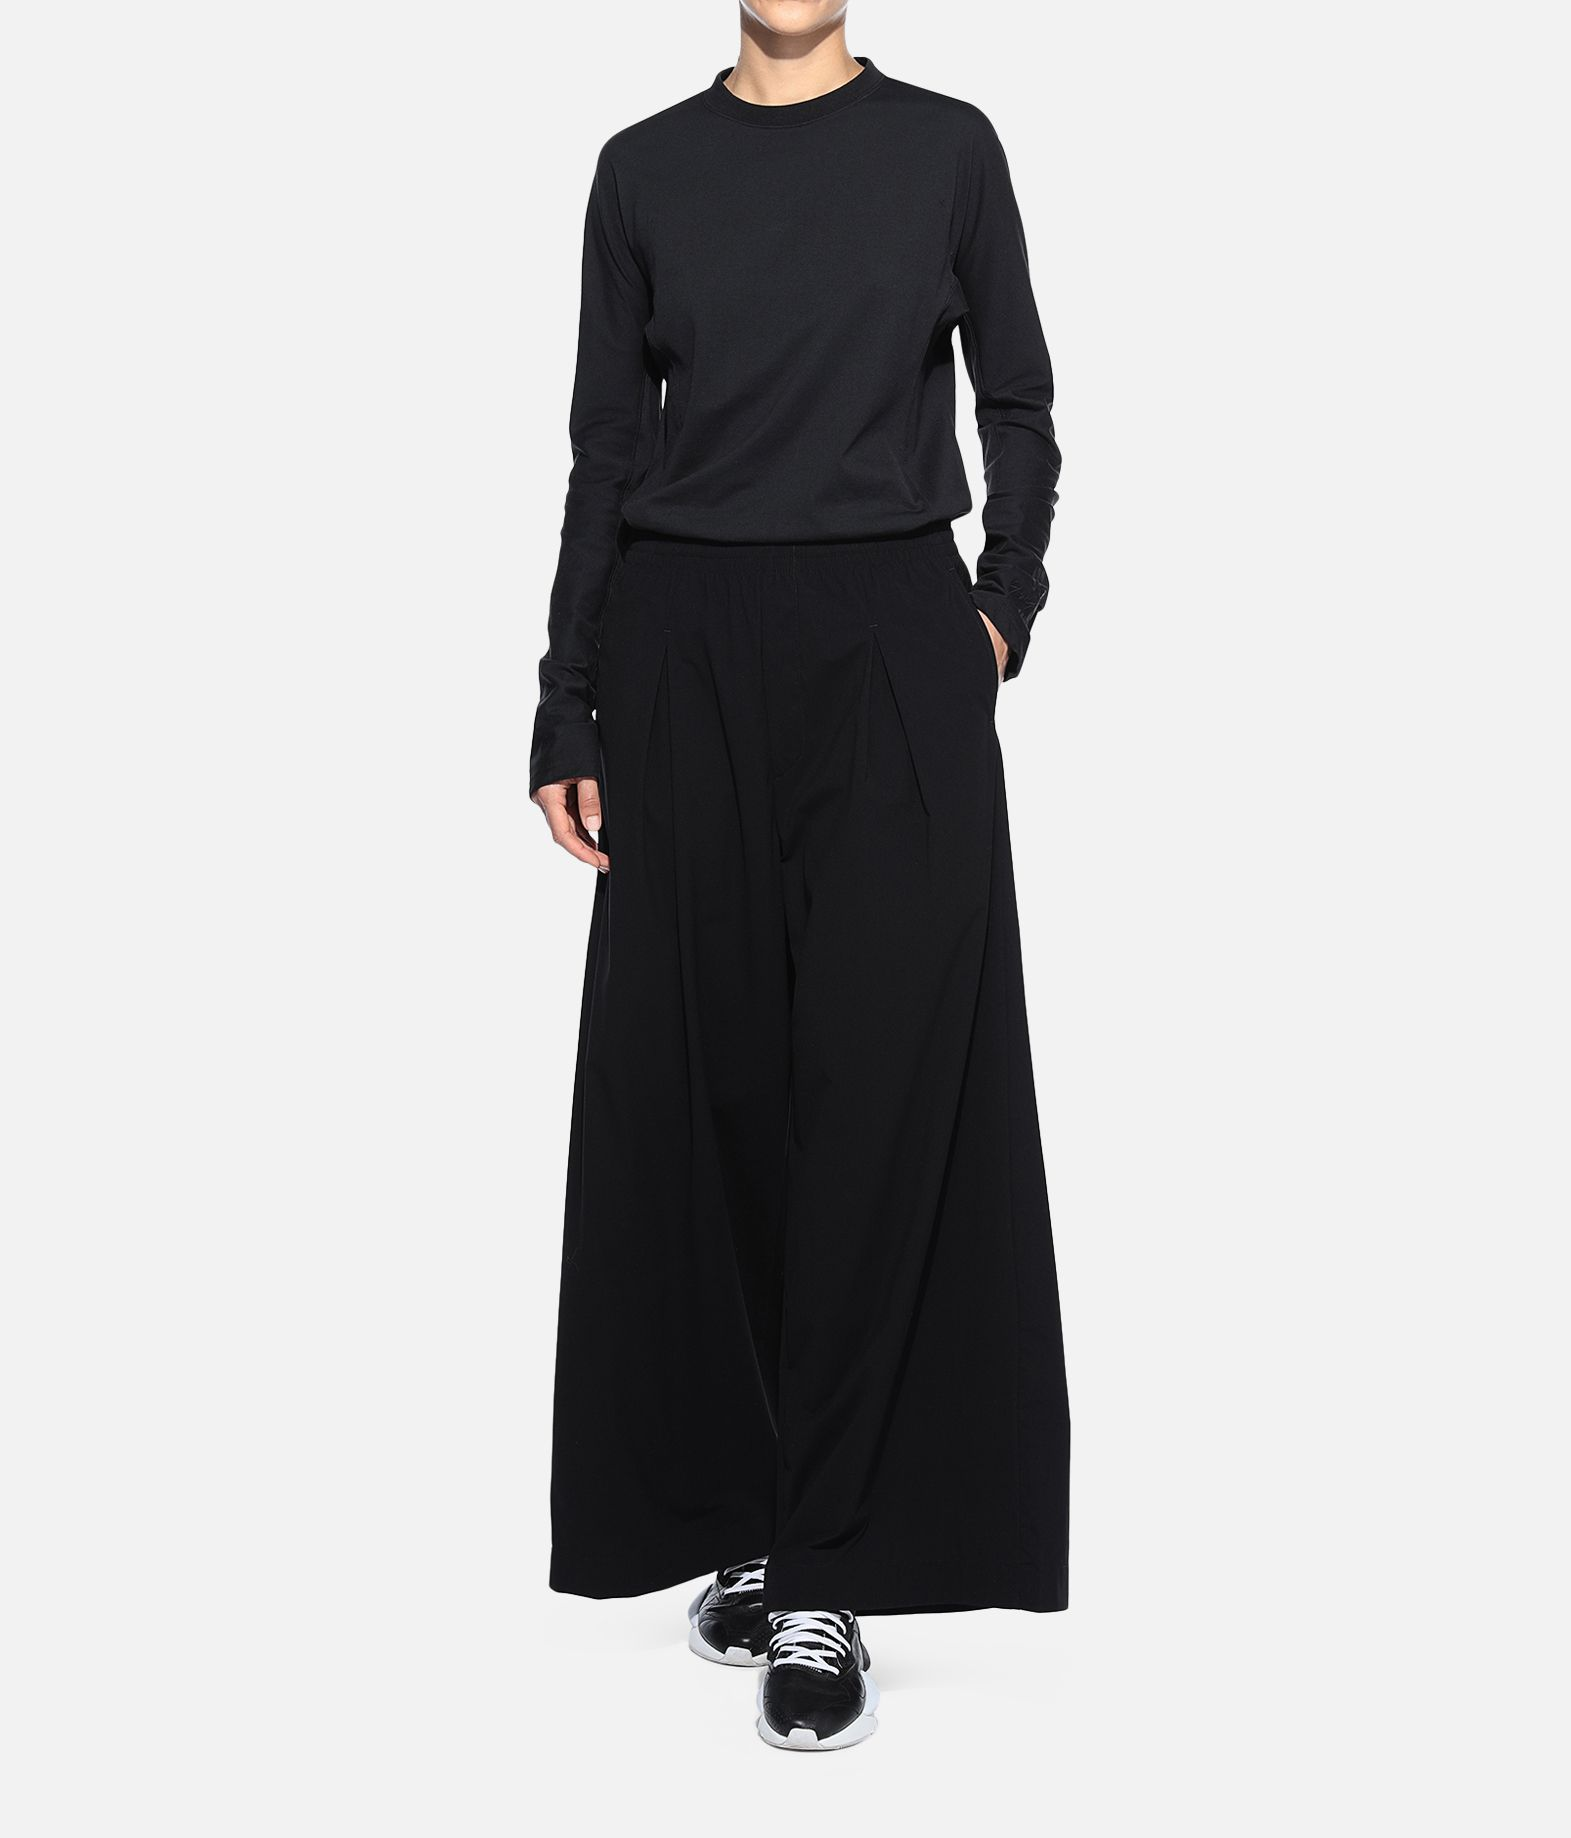 Y-3 Y-3 Light Wide Pants Casual pants Woman a